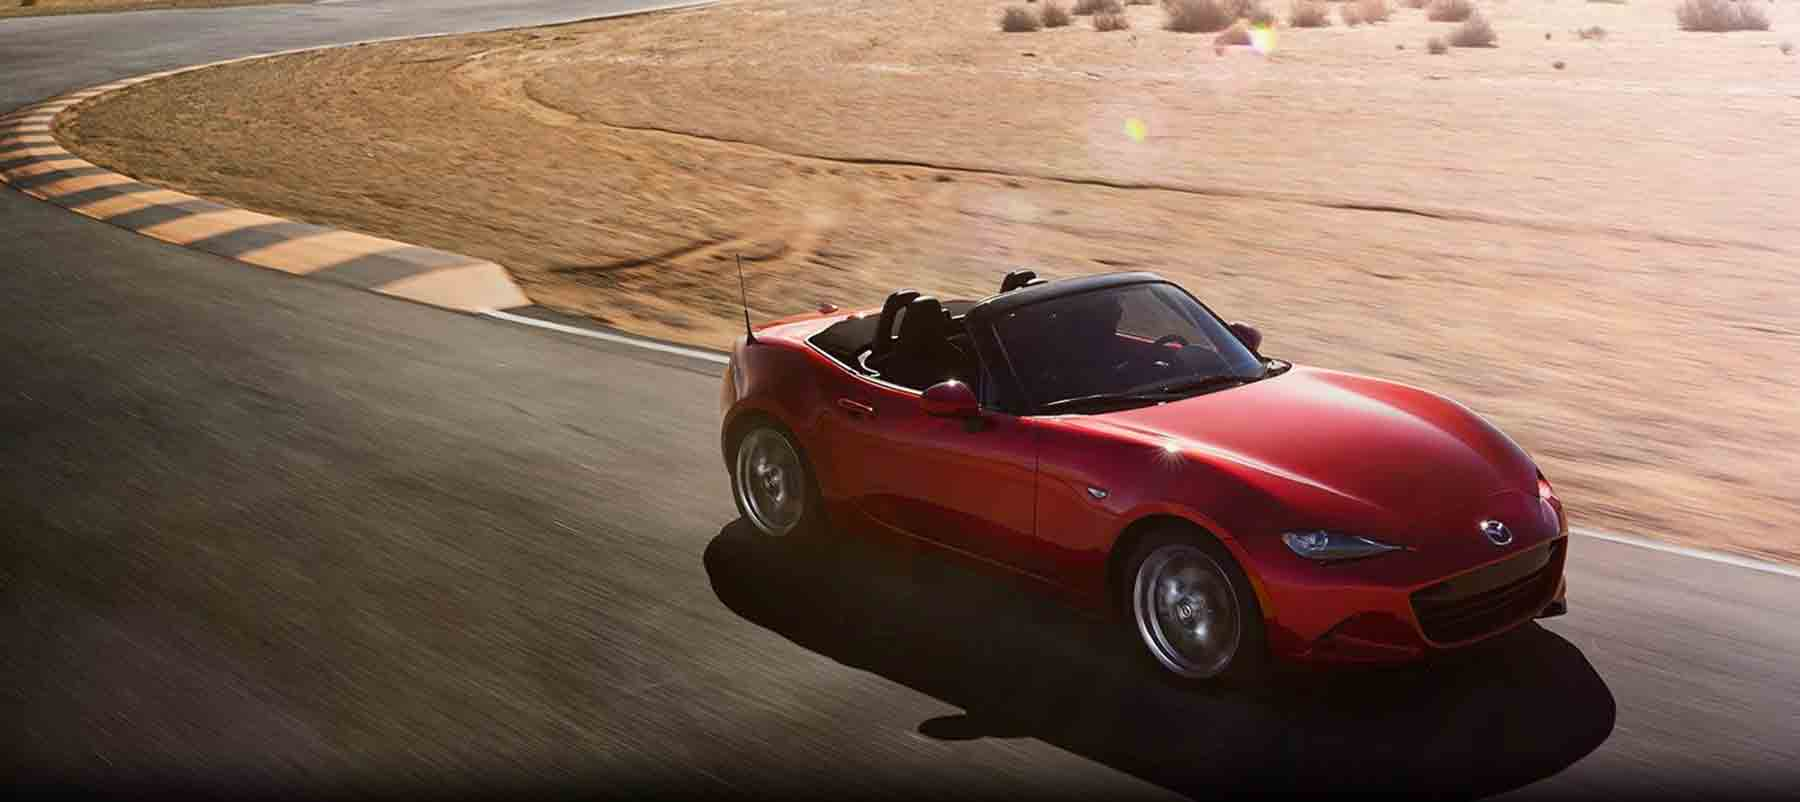 2017 MX 5 Miata, DESIGNED TO AWAKEN ALL YOUR SENSES